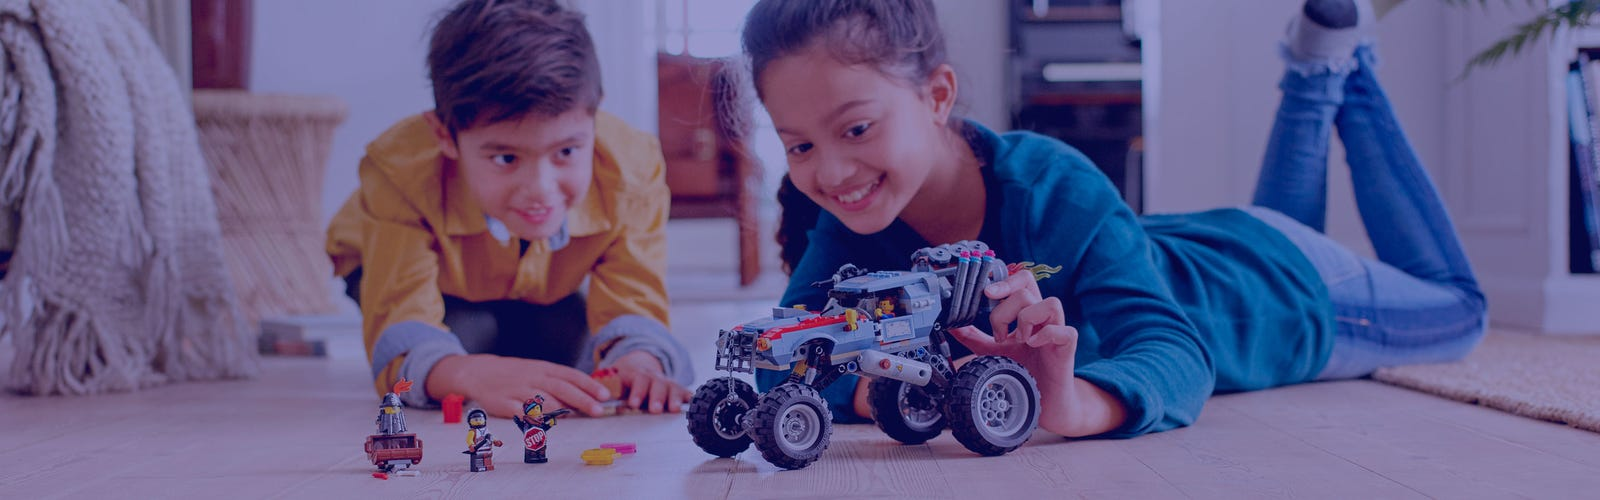 The LEGO Movie 2 Build More LIfestyle image boy and girl playing with combo product 70827+70829